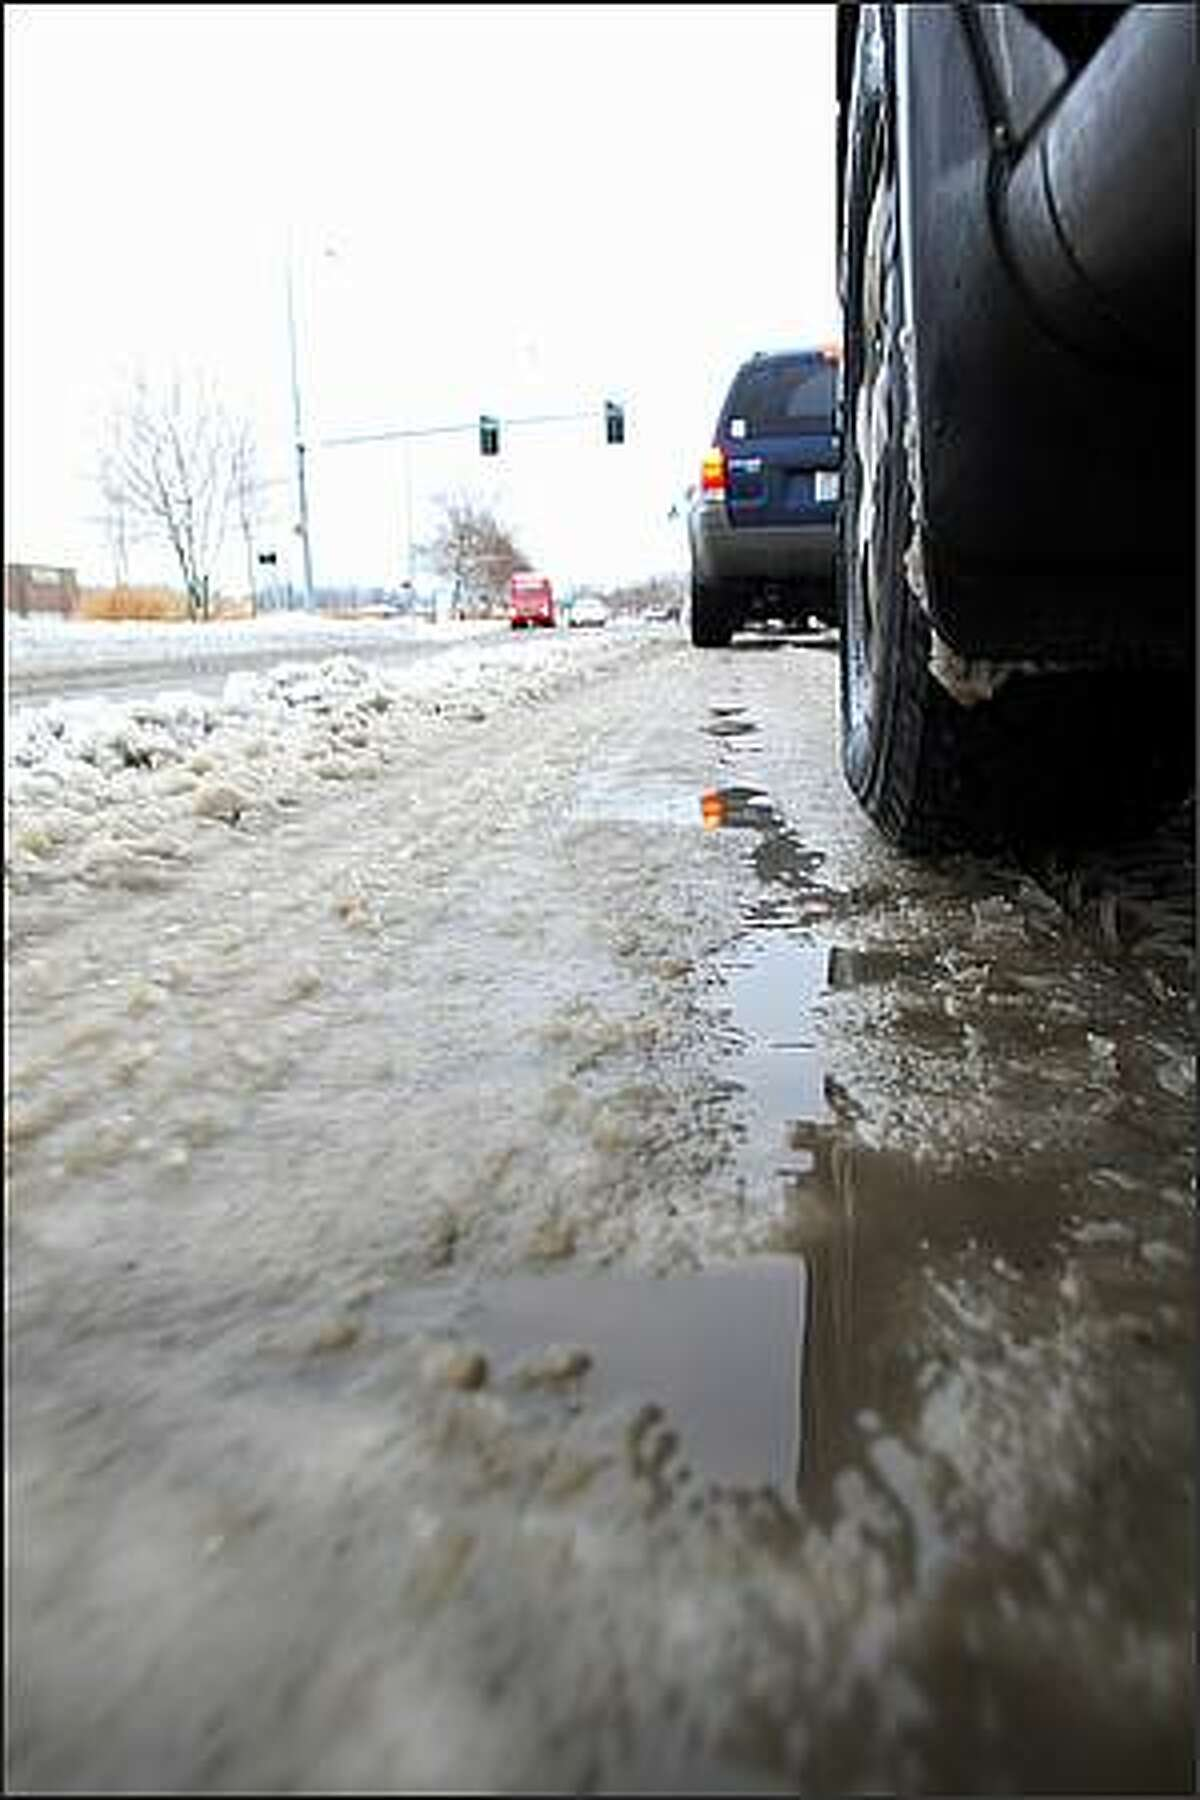 Roads of partly melted ice clumps lead the way into Alderwood Mall in Lynnwood, Wash.